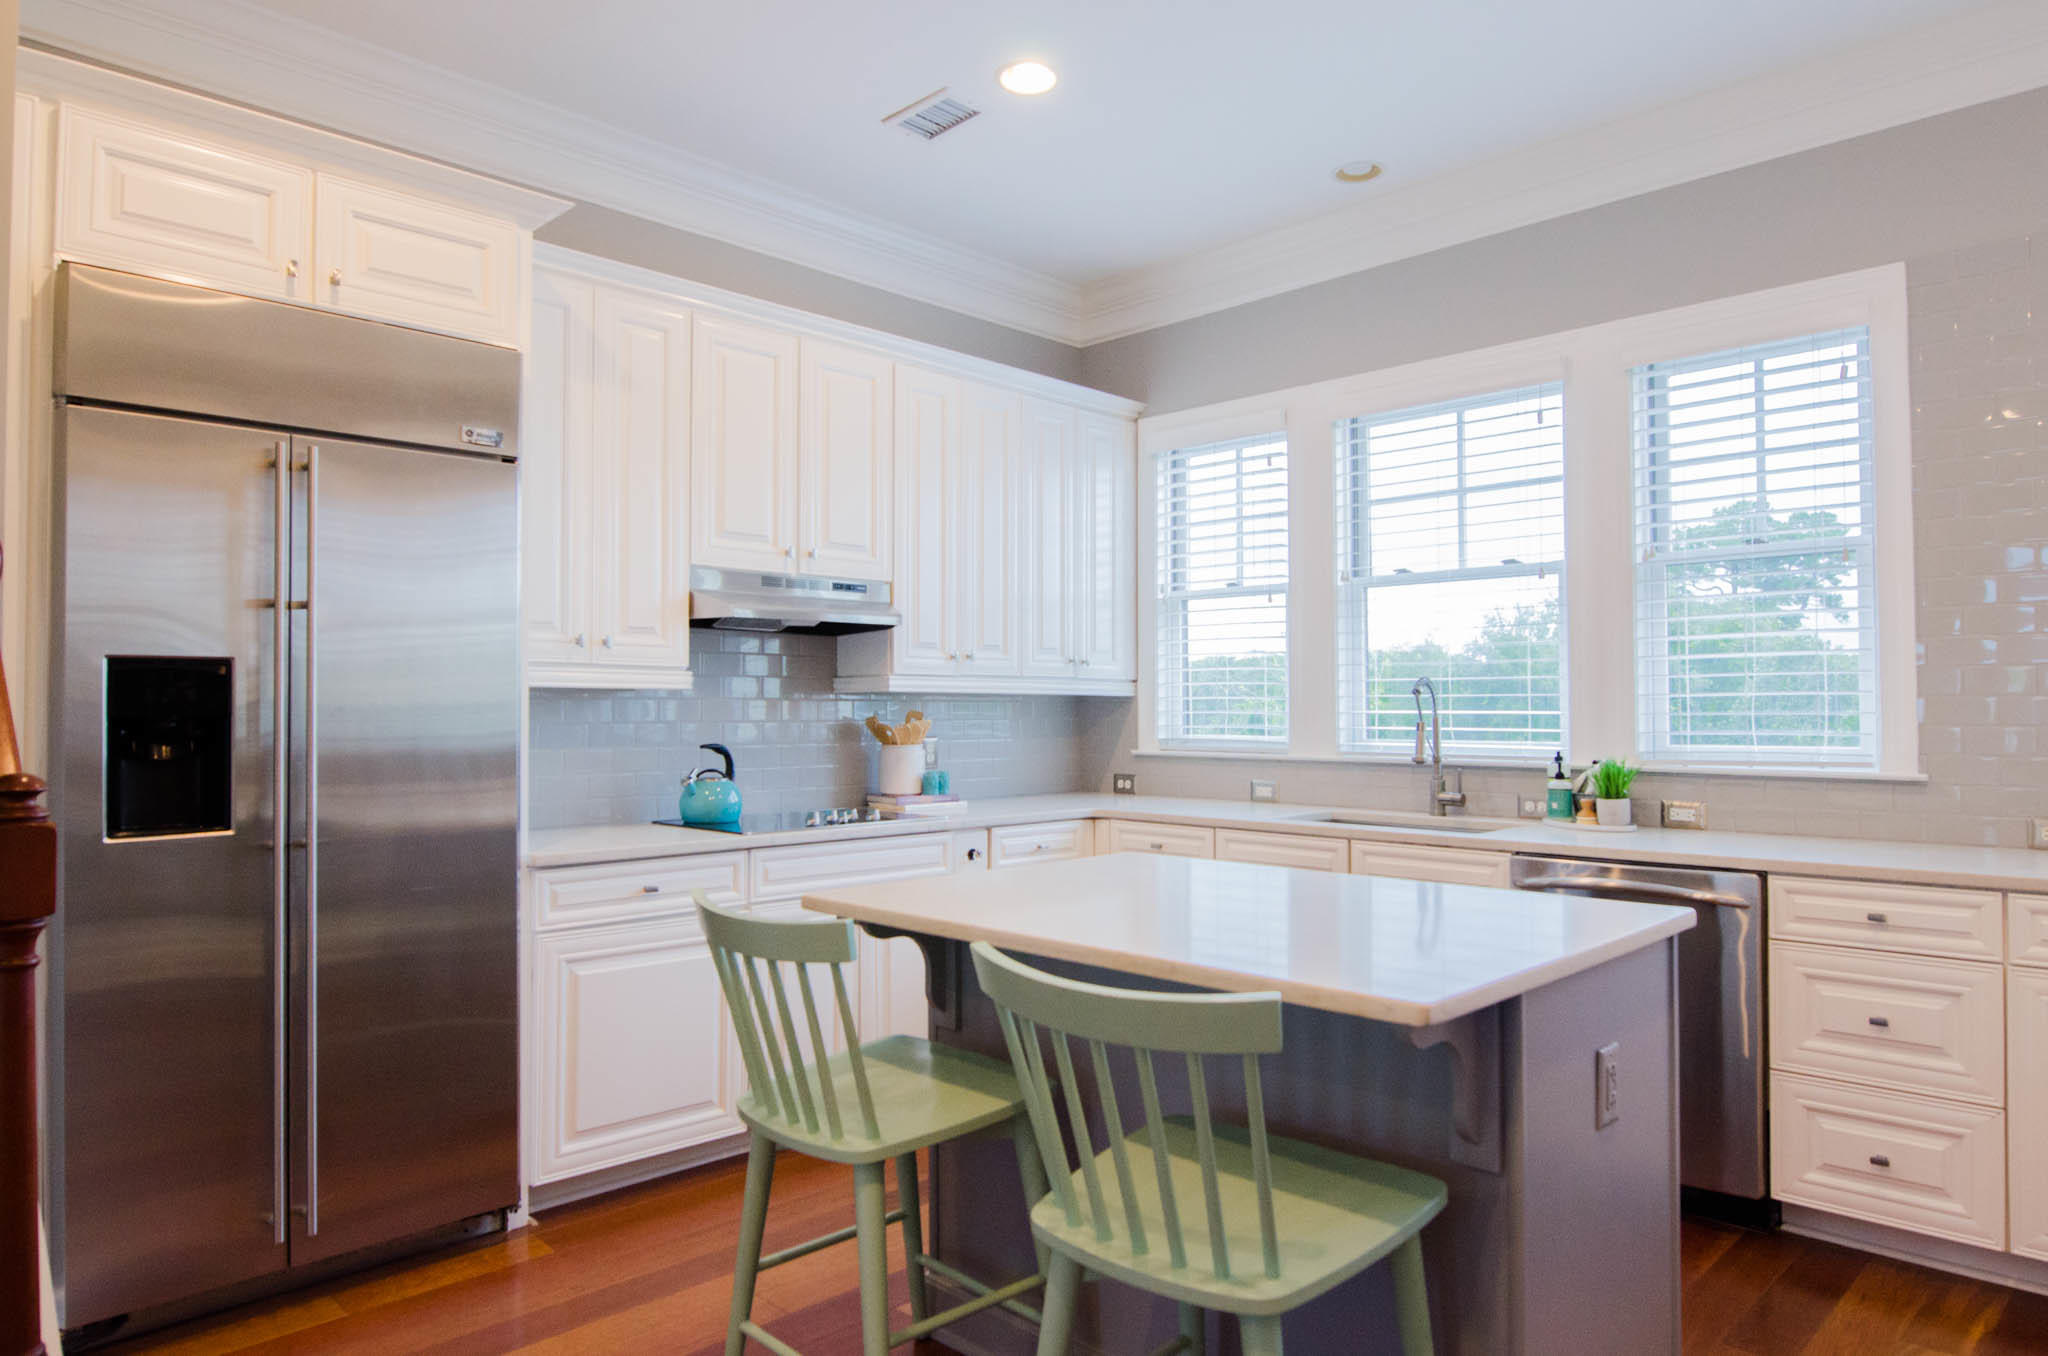 Sawyer's Landing Homes For Sale - 969 Cove Bay, Mount Pleasant, SC - 35